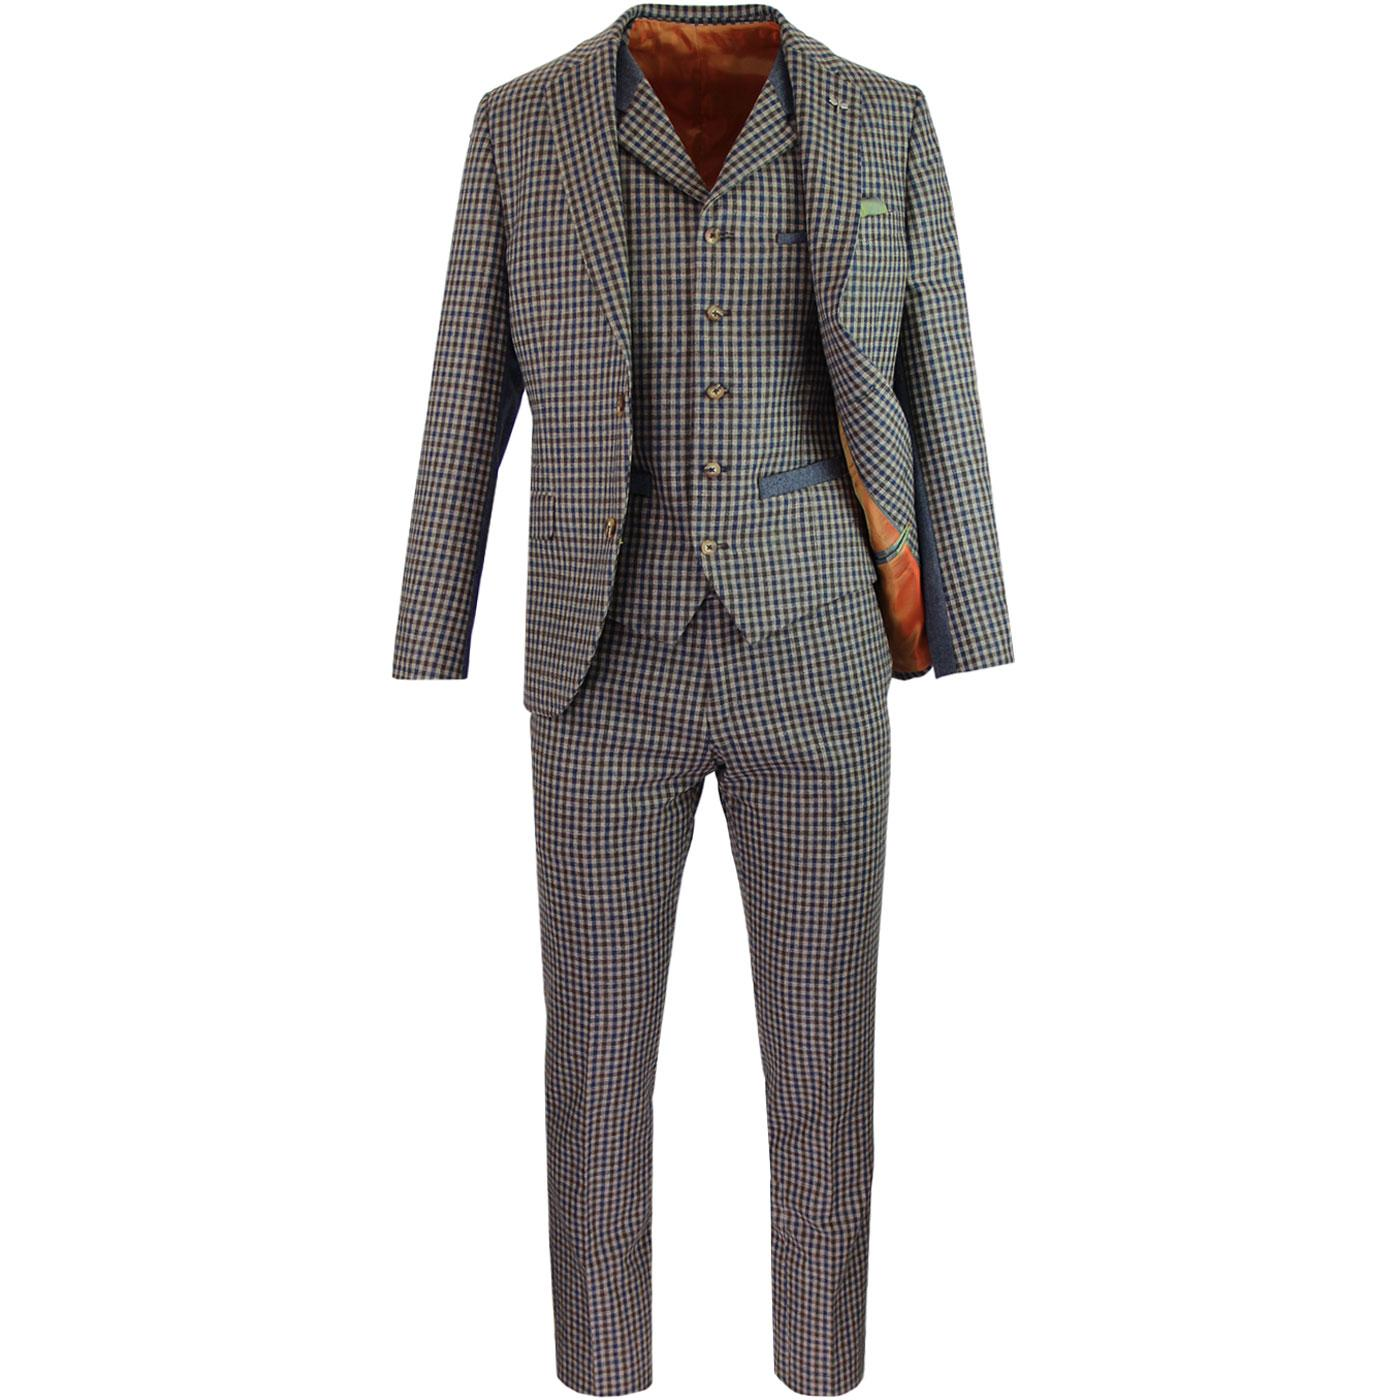 Towergate GIBSON LONDON Mod Gingham Check Suit